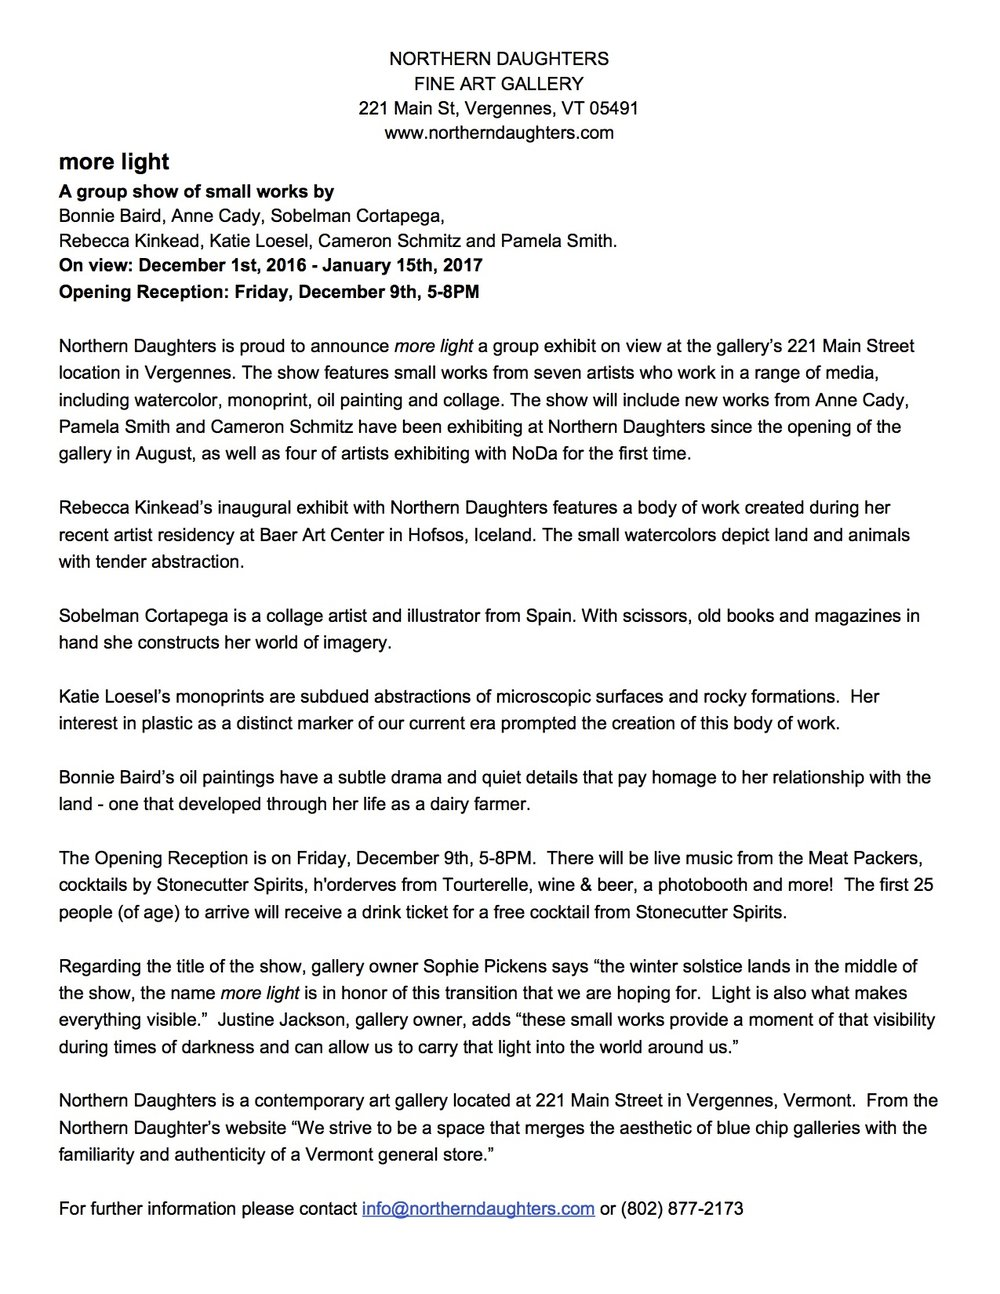 Northern Daughters PRESS RELEASE more light.jpg